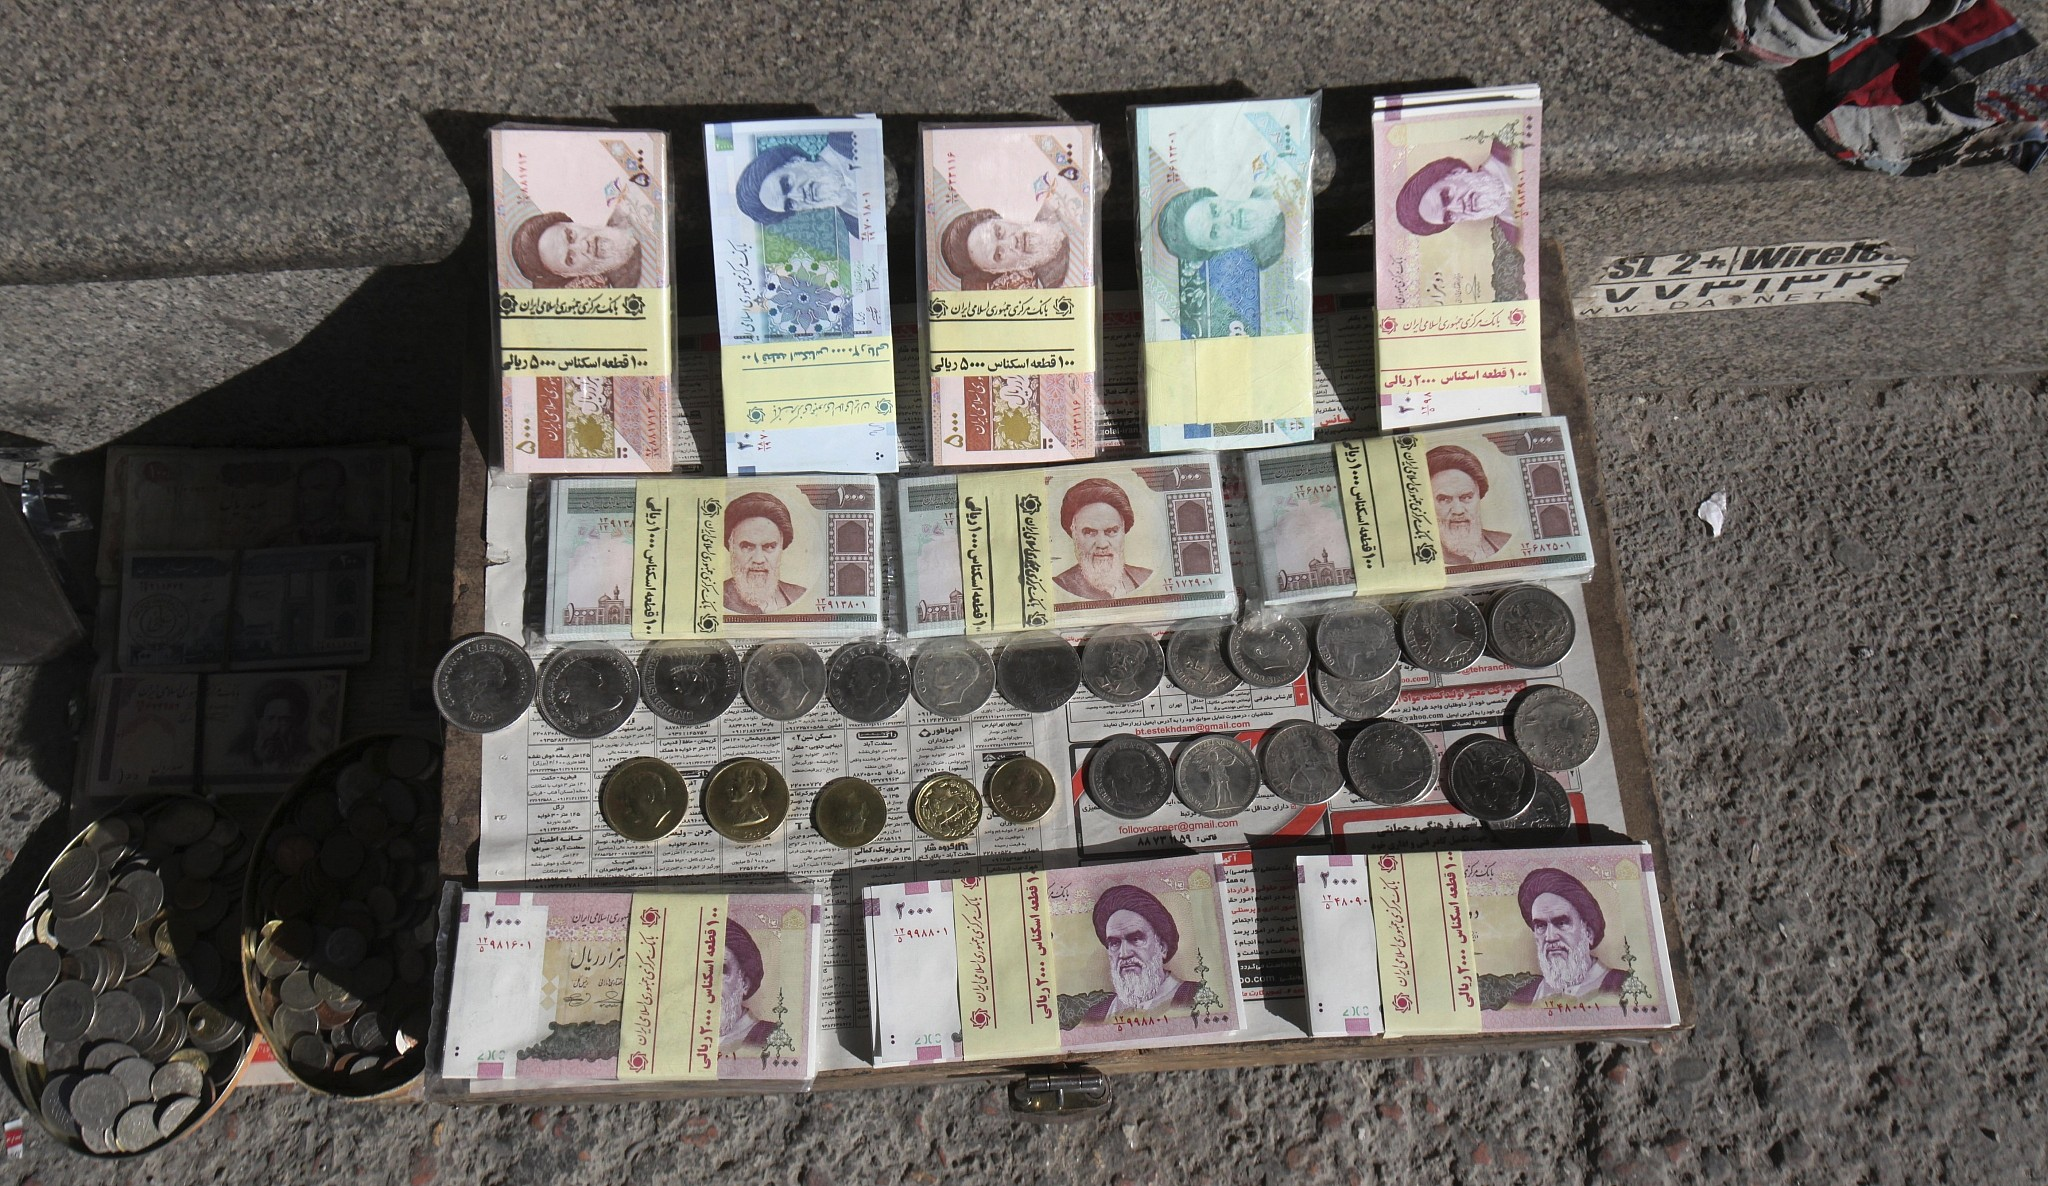 Ilrative Photo Of Iranian Banknotes And Foreign Coins Displayed By A Vendor On Side Walk